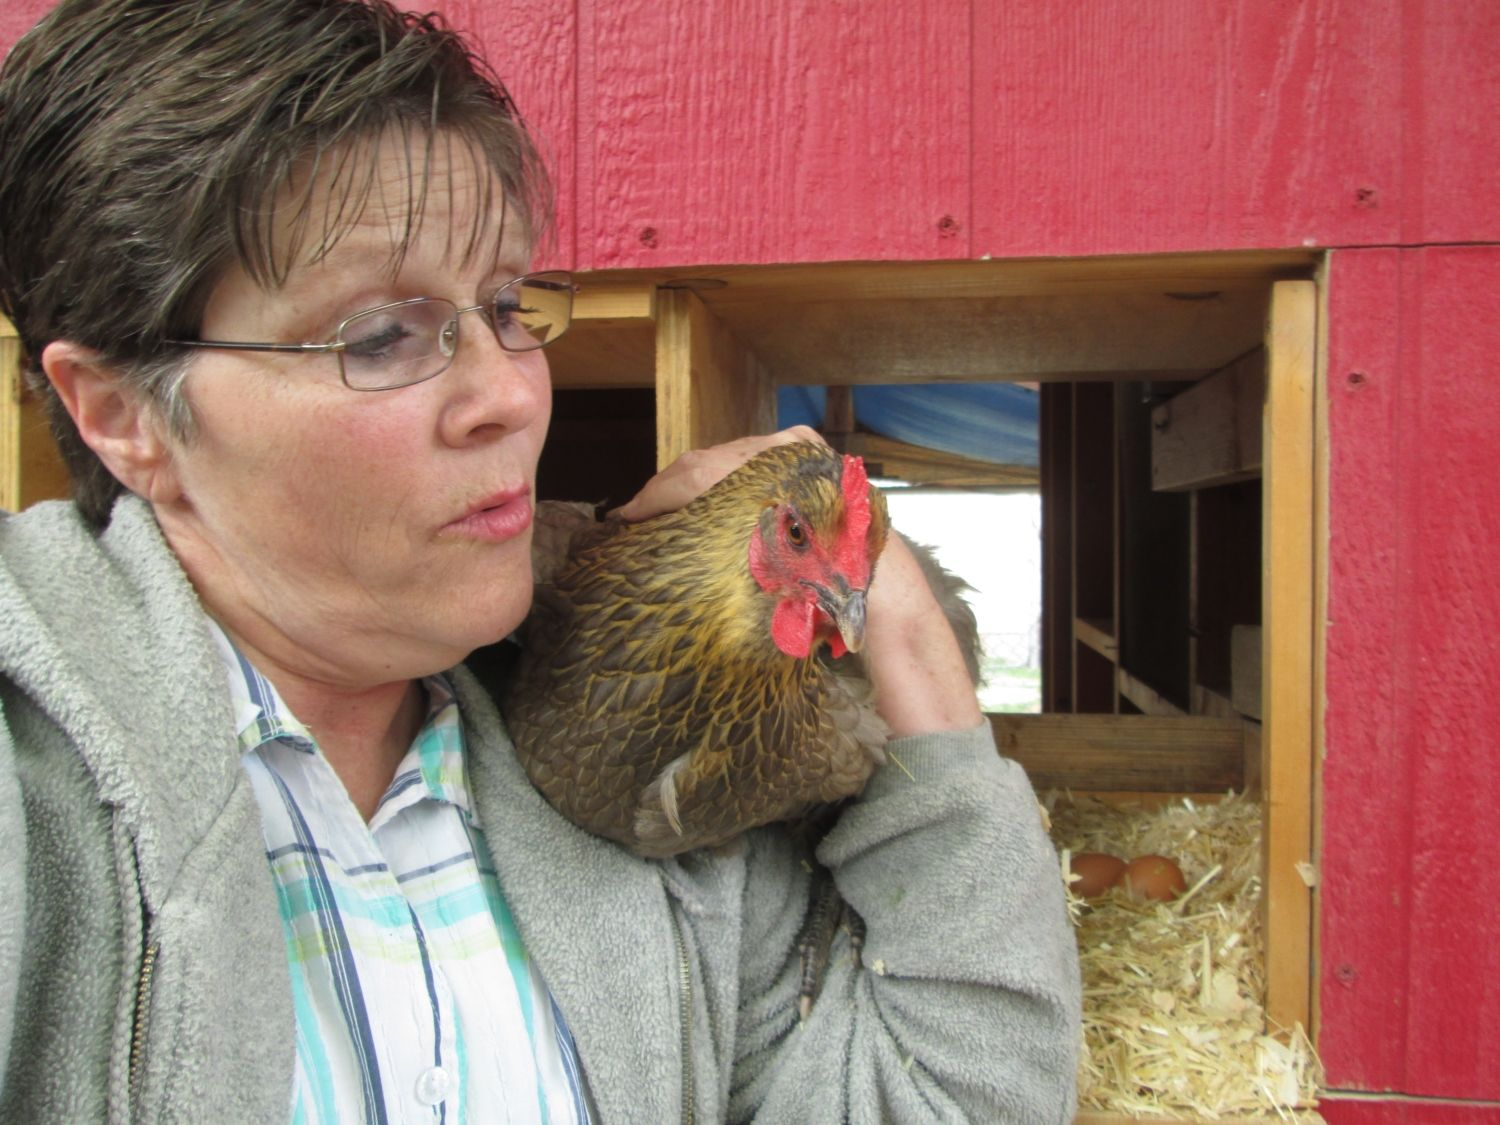 Cynthia12's photos in Selfies with Fowl a Contest thread for participants of the Springing in the Chicks Hatch A Long